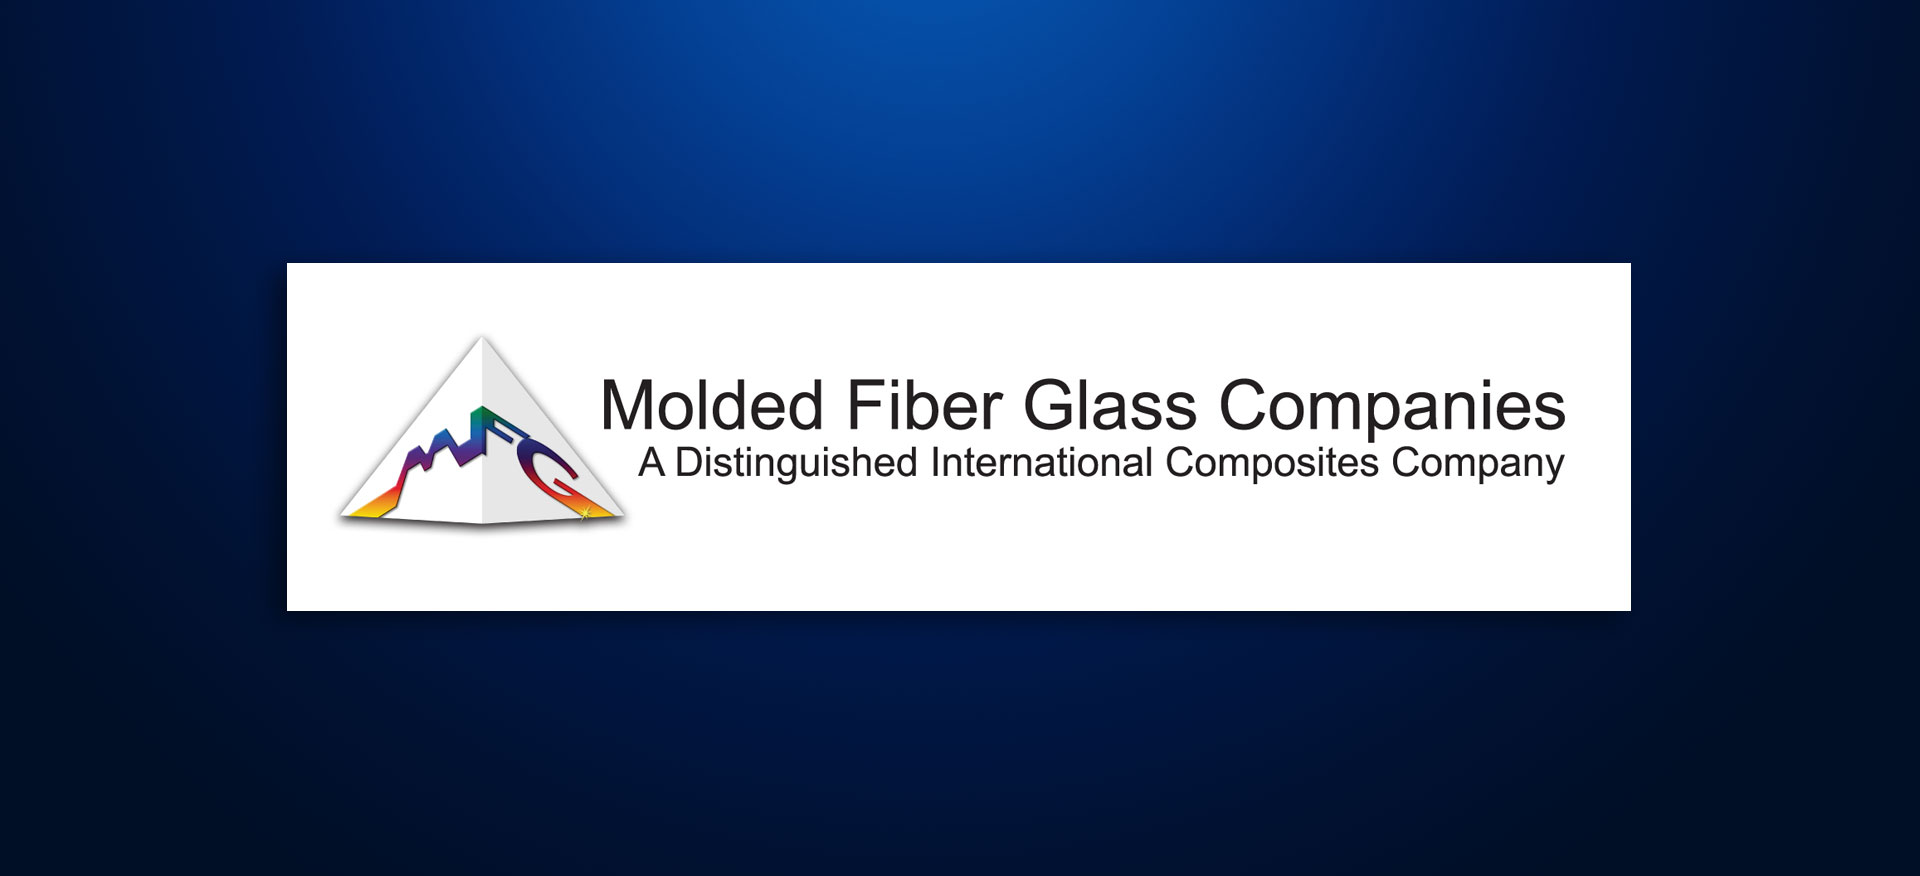 MFG Companies Molded Fiber Glass Companies